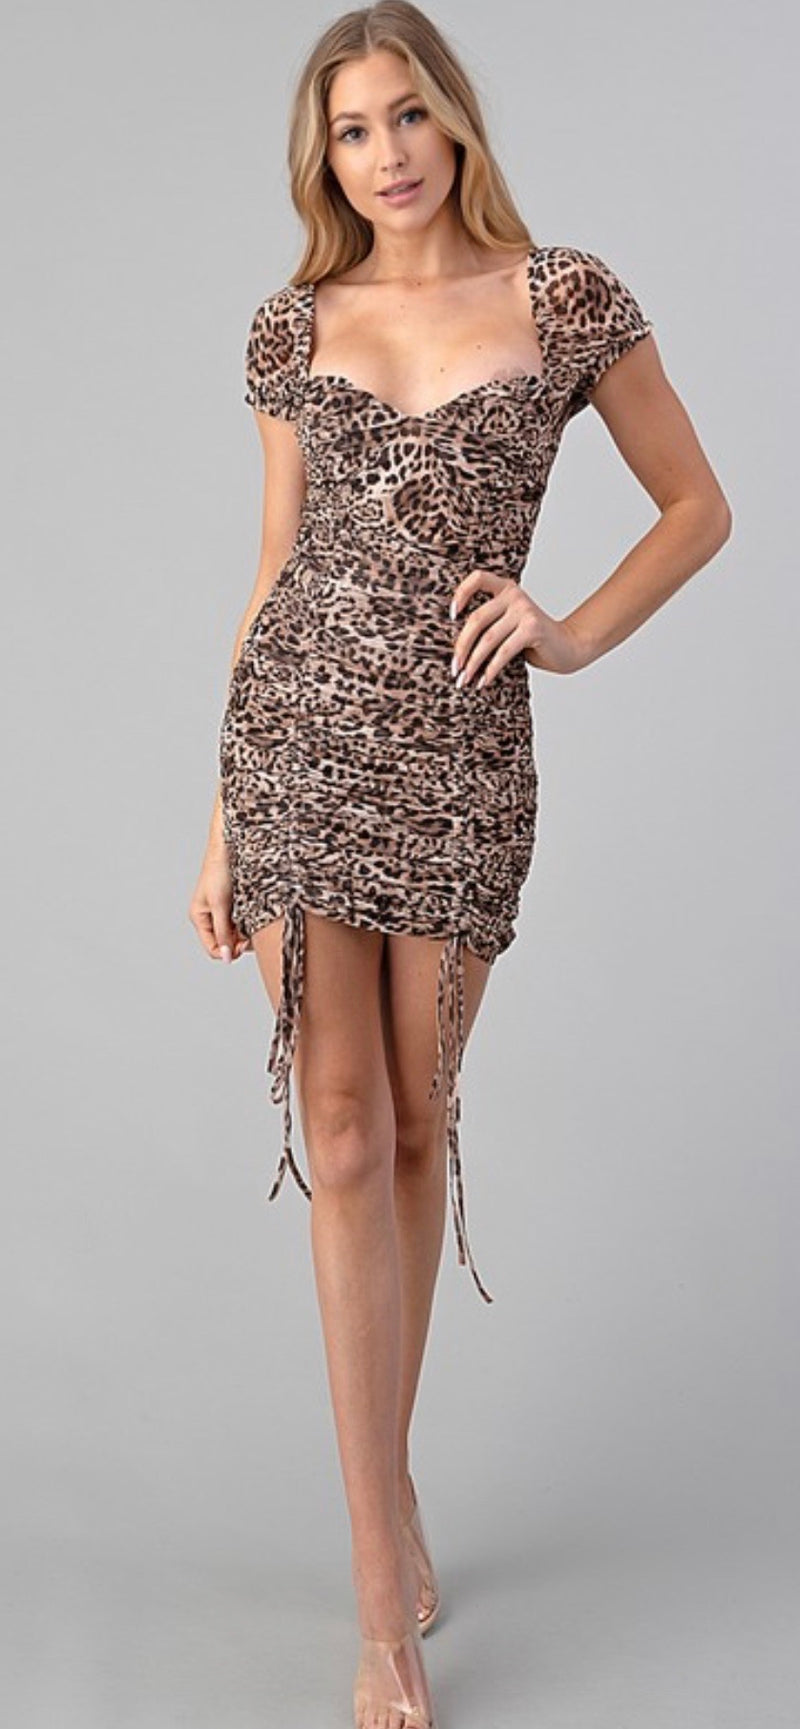 LEOPARD FRONT RUSHED MINI DRESS - RETAIL STORE